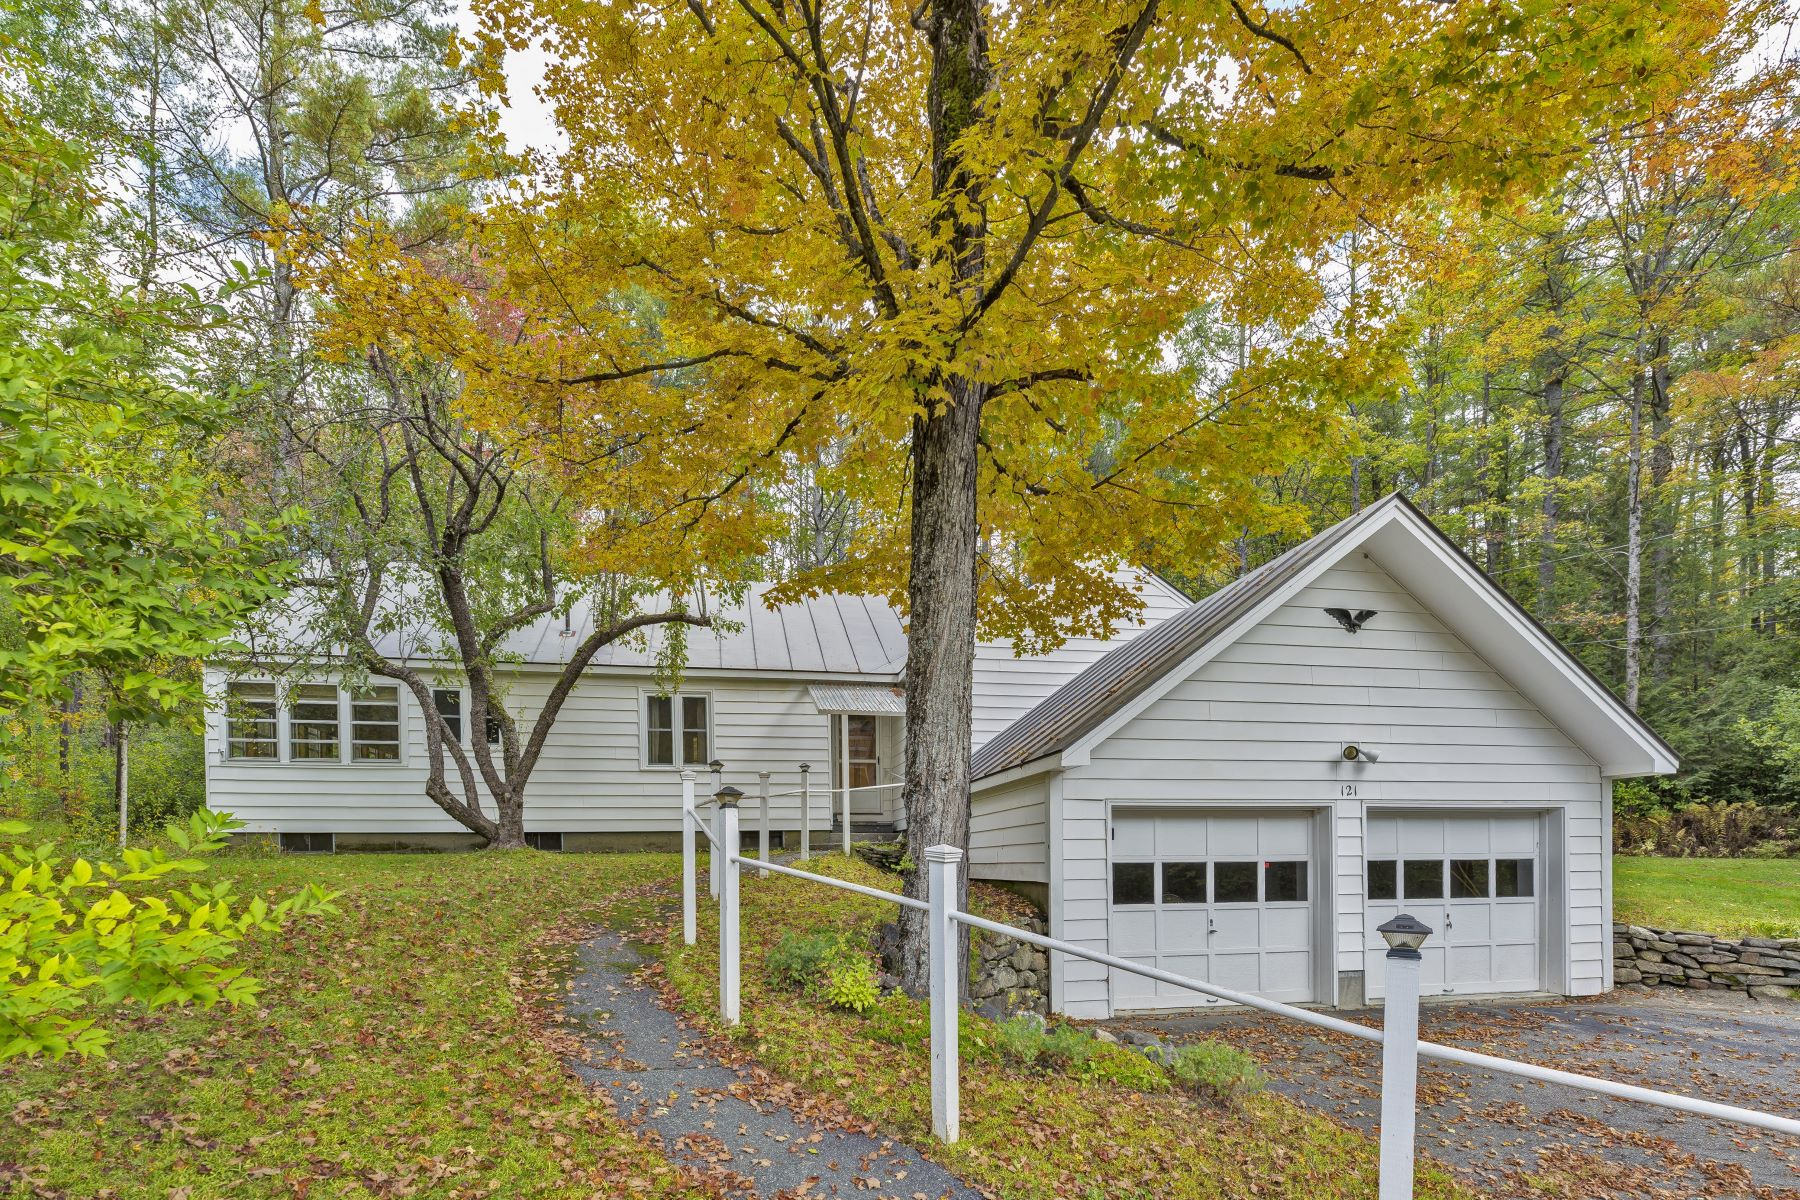 Single Family Homes for Sale at Lebanon Ranch and Acreage 121 Slayton Hill Rd Lebanon, New Hampshire 03766 United States